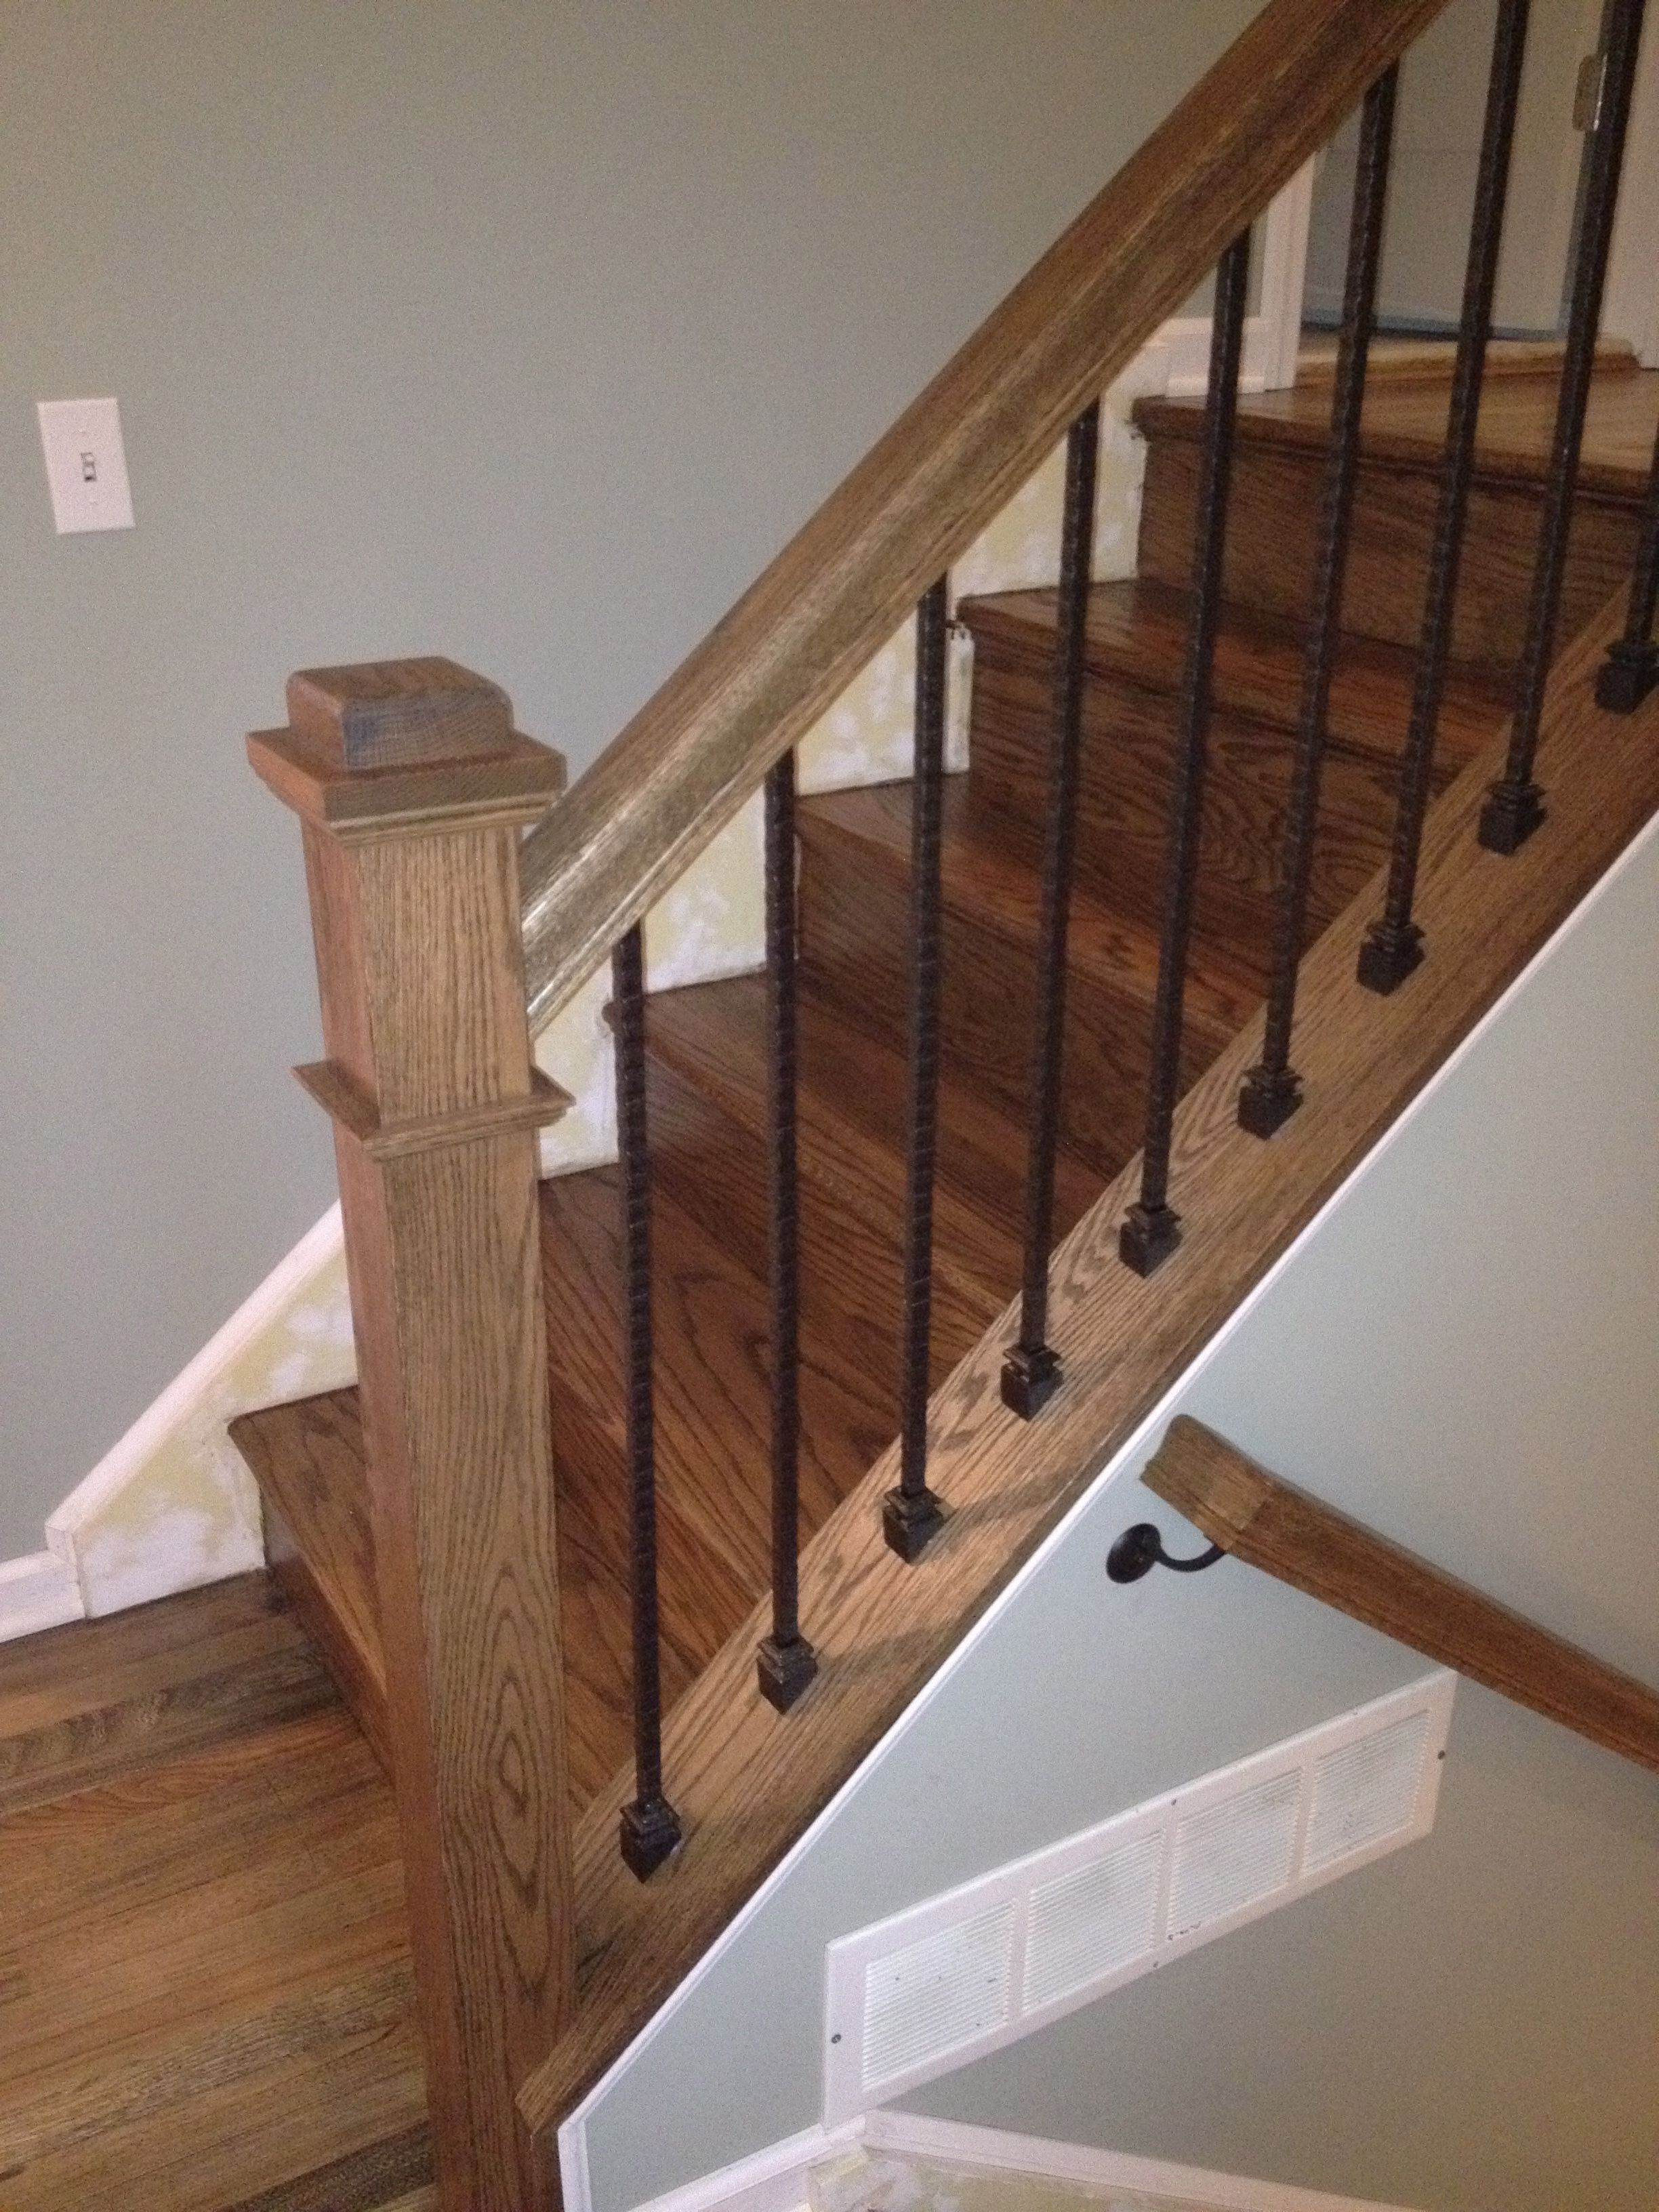 Best The Oak Post And Railing Contrast Eloquently With The Iron Spindles To Attractively Accent A 400 x 300